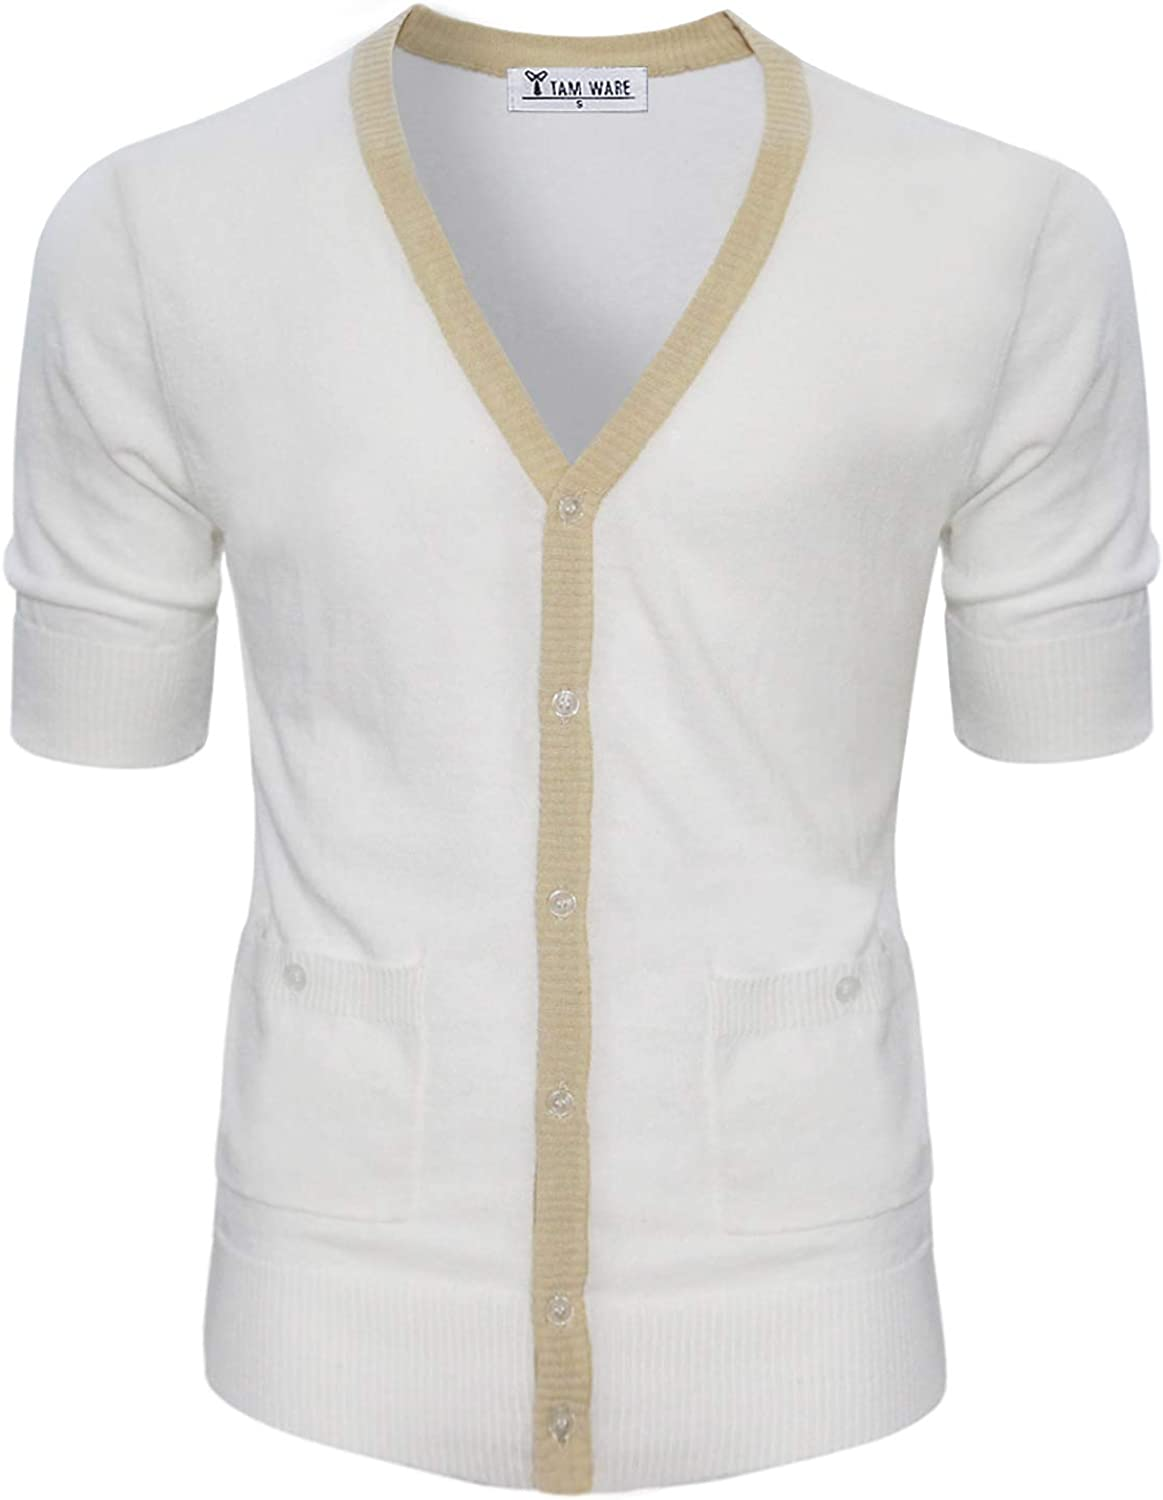 TAM WARE Mens Classic Slim Fit Ribbed Six Buttoned Cardigan